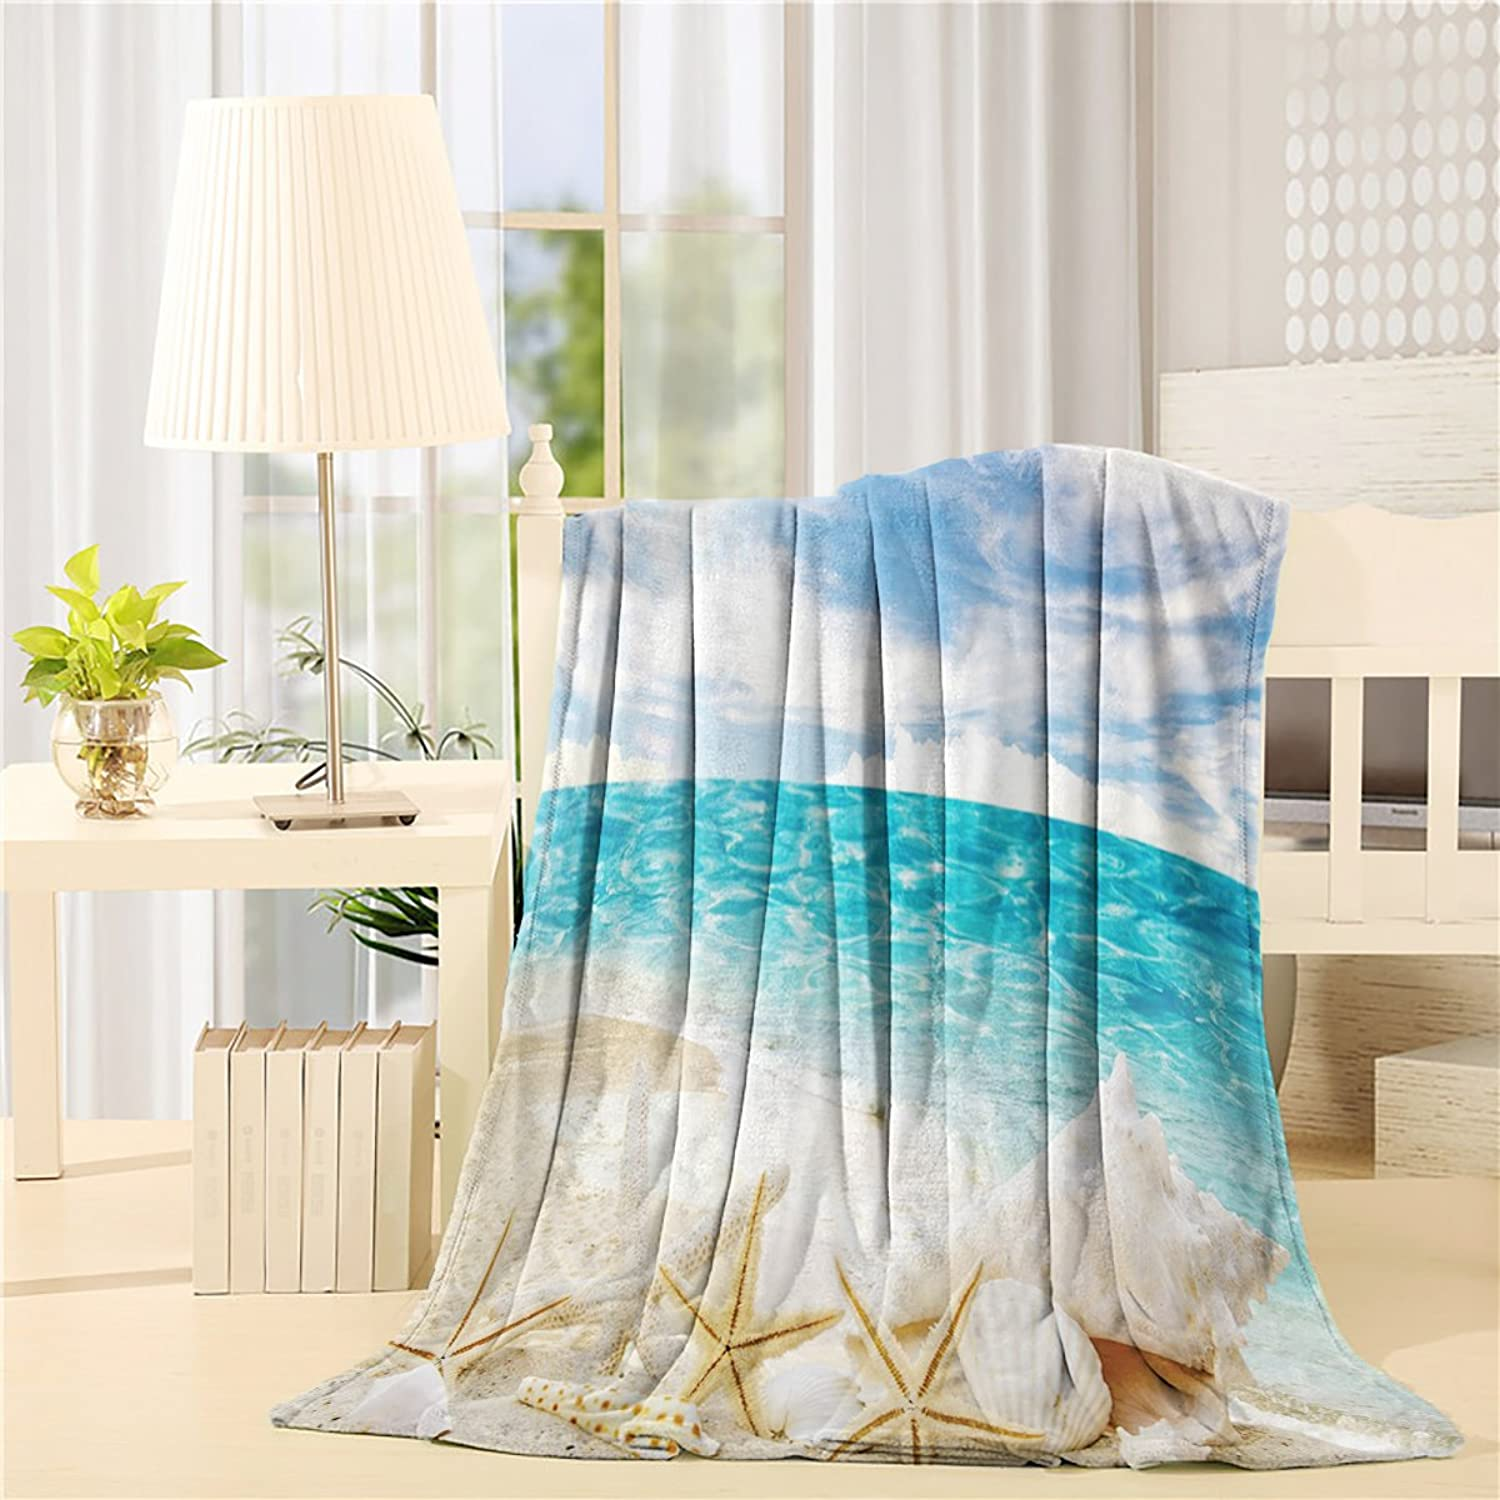 COLORSUM Seaside Soft Plush Throw Blanket 60x80 inch Printed Flannel Fleece Blanket for Bedroom Living Room Couch Bed Sofa  Sunny Day Starfish Shells On Beach